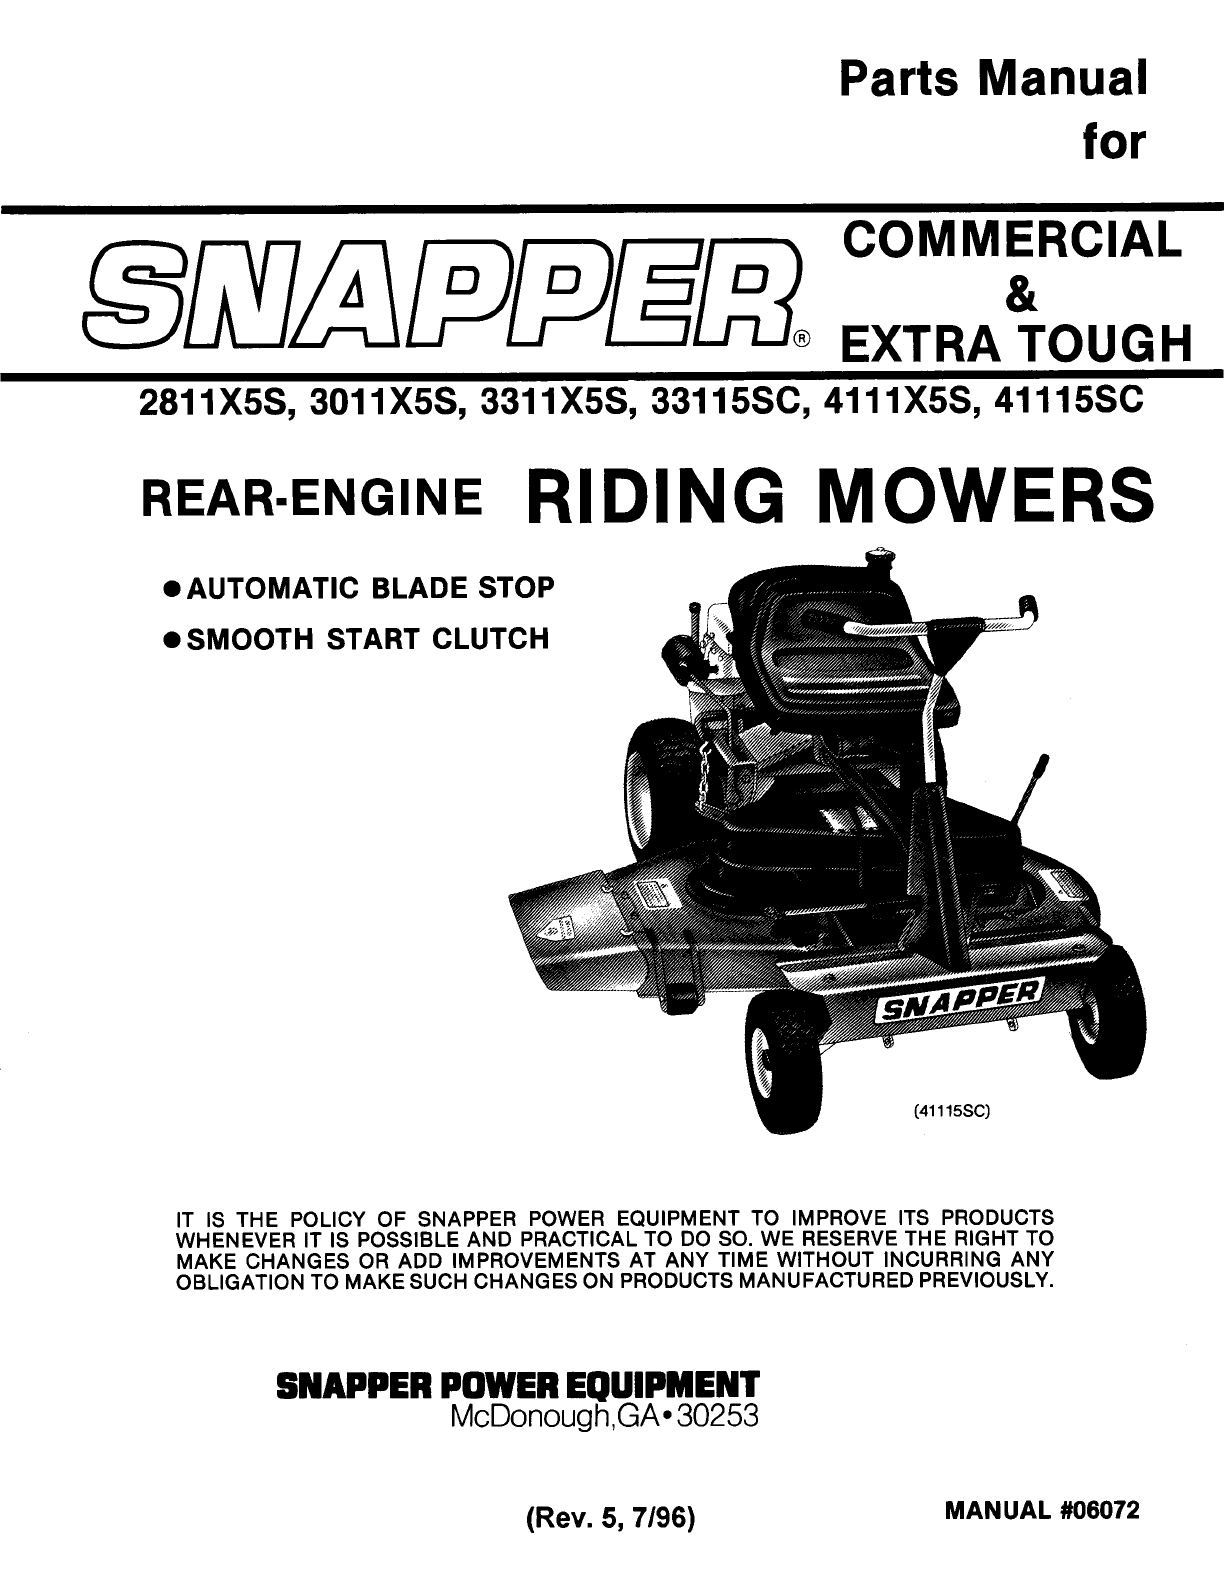 84e07184 30ec 4302 b856 842ecf9c9b3f bg1 snapper lawn mower 2811x5s user guide manualsonline com snapper solenoid wiring diagram at webbmarketing.co